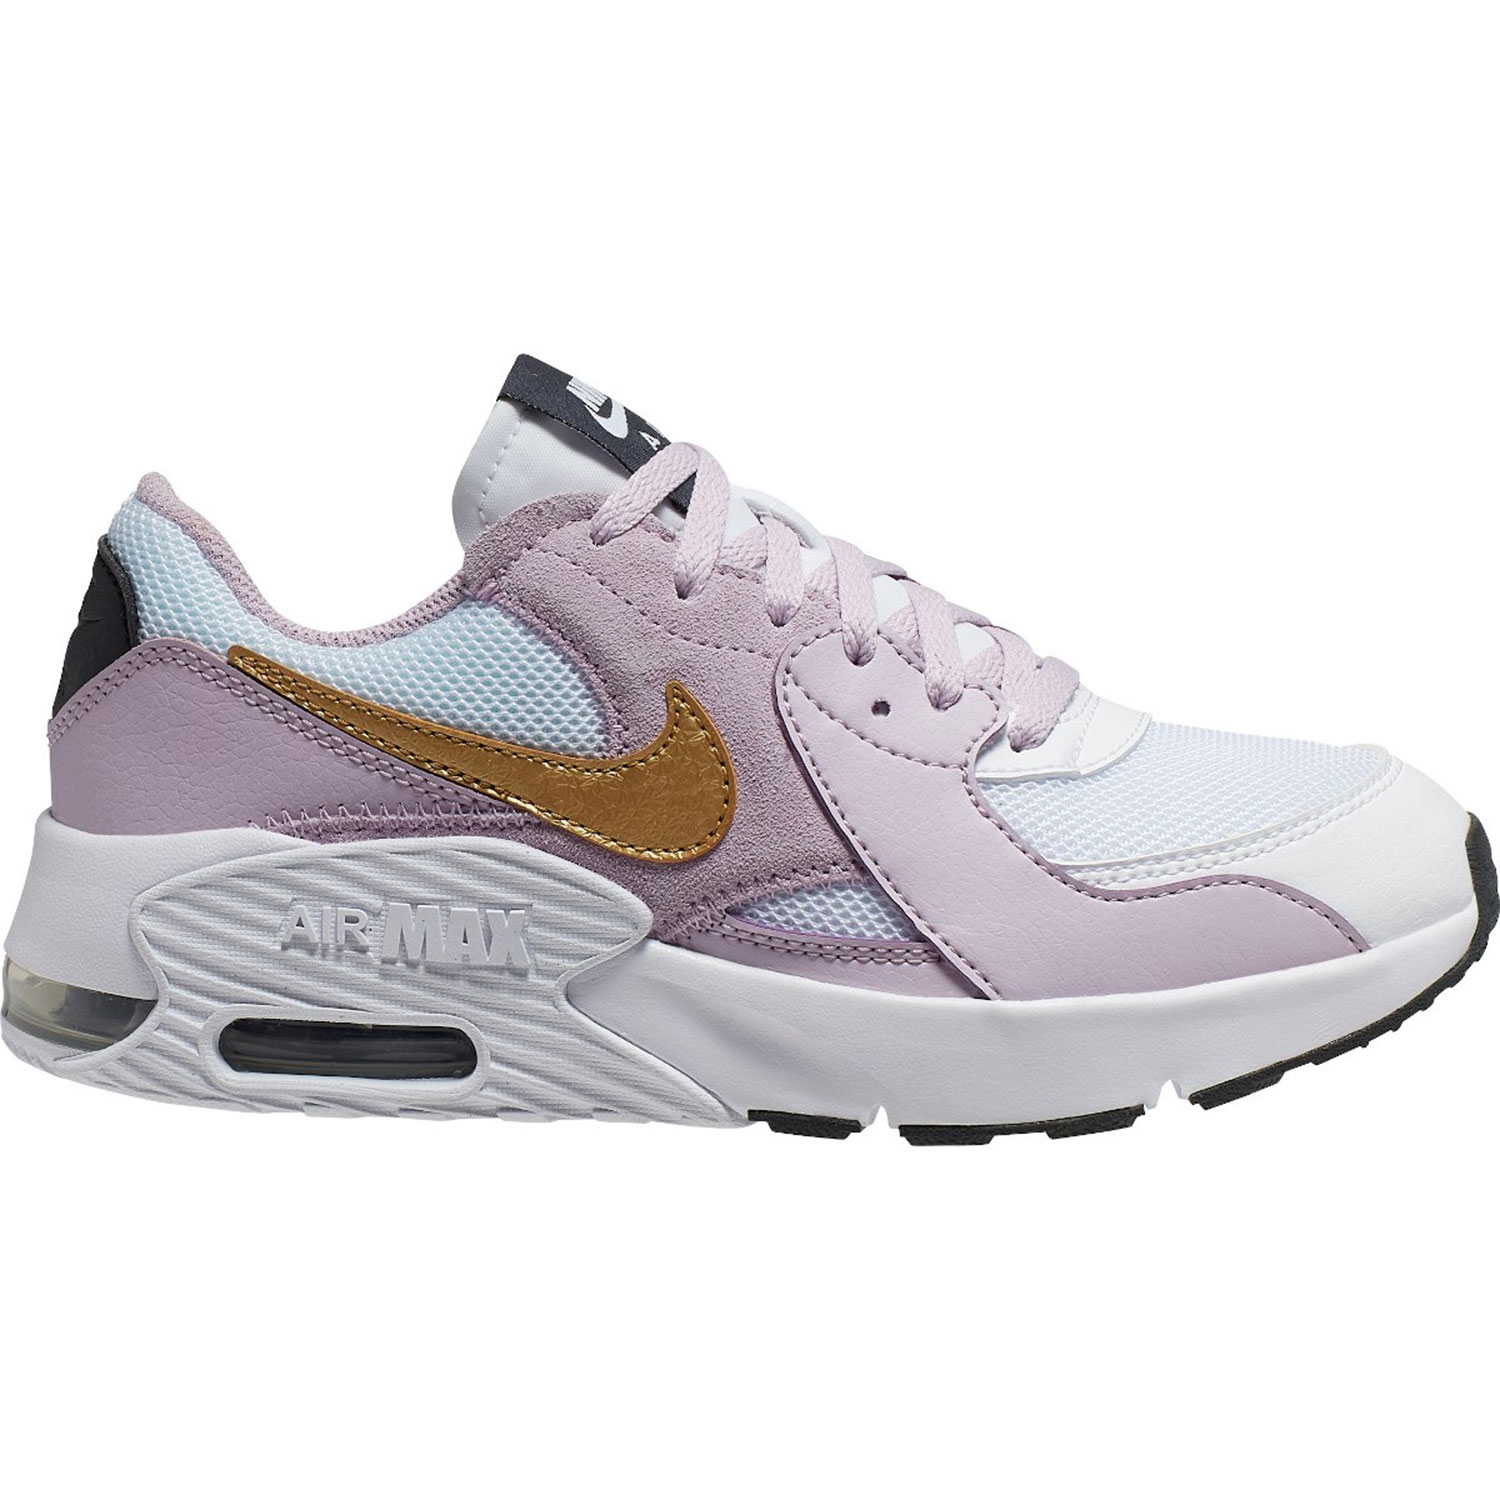 Nike Air Max Excee GS Kinder Sneaker lila gold